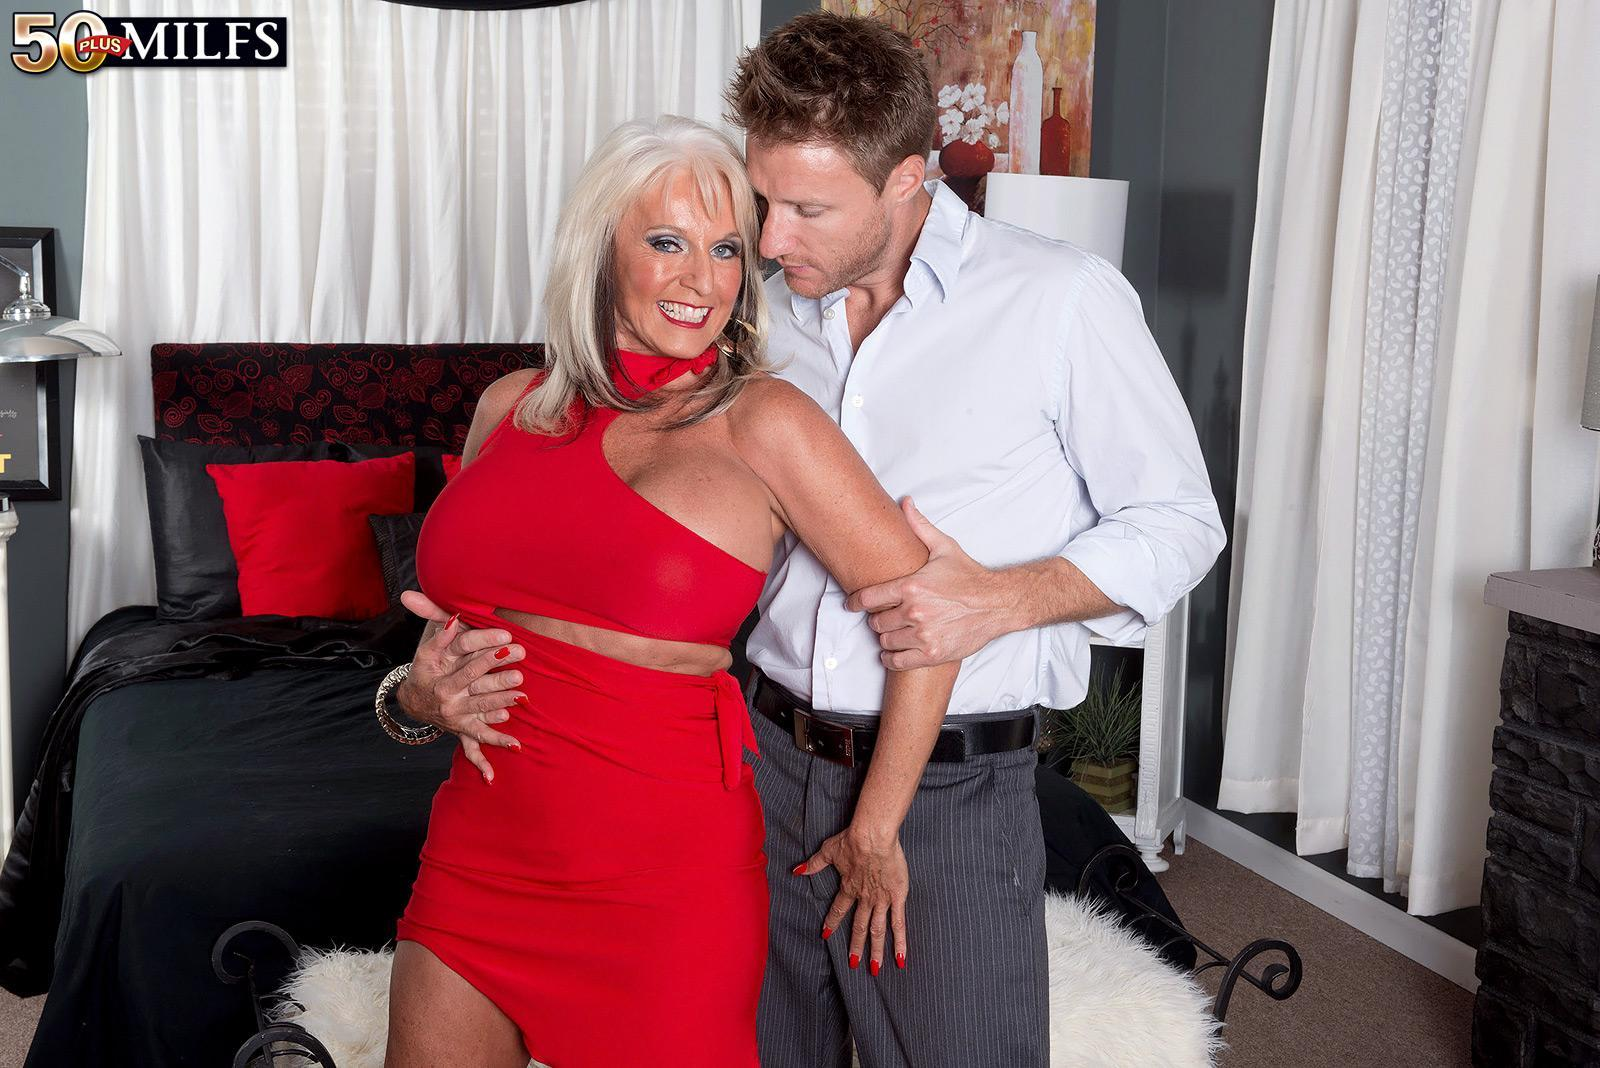 Over 50 MILF Sally D'Angelo having enormous juggs liberated from dress by junior guy